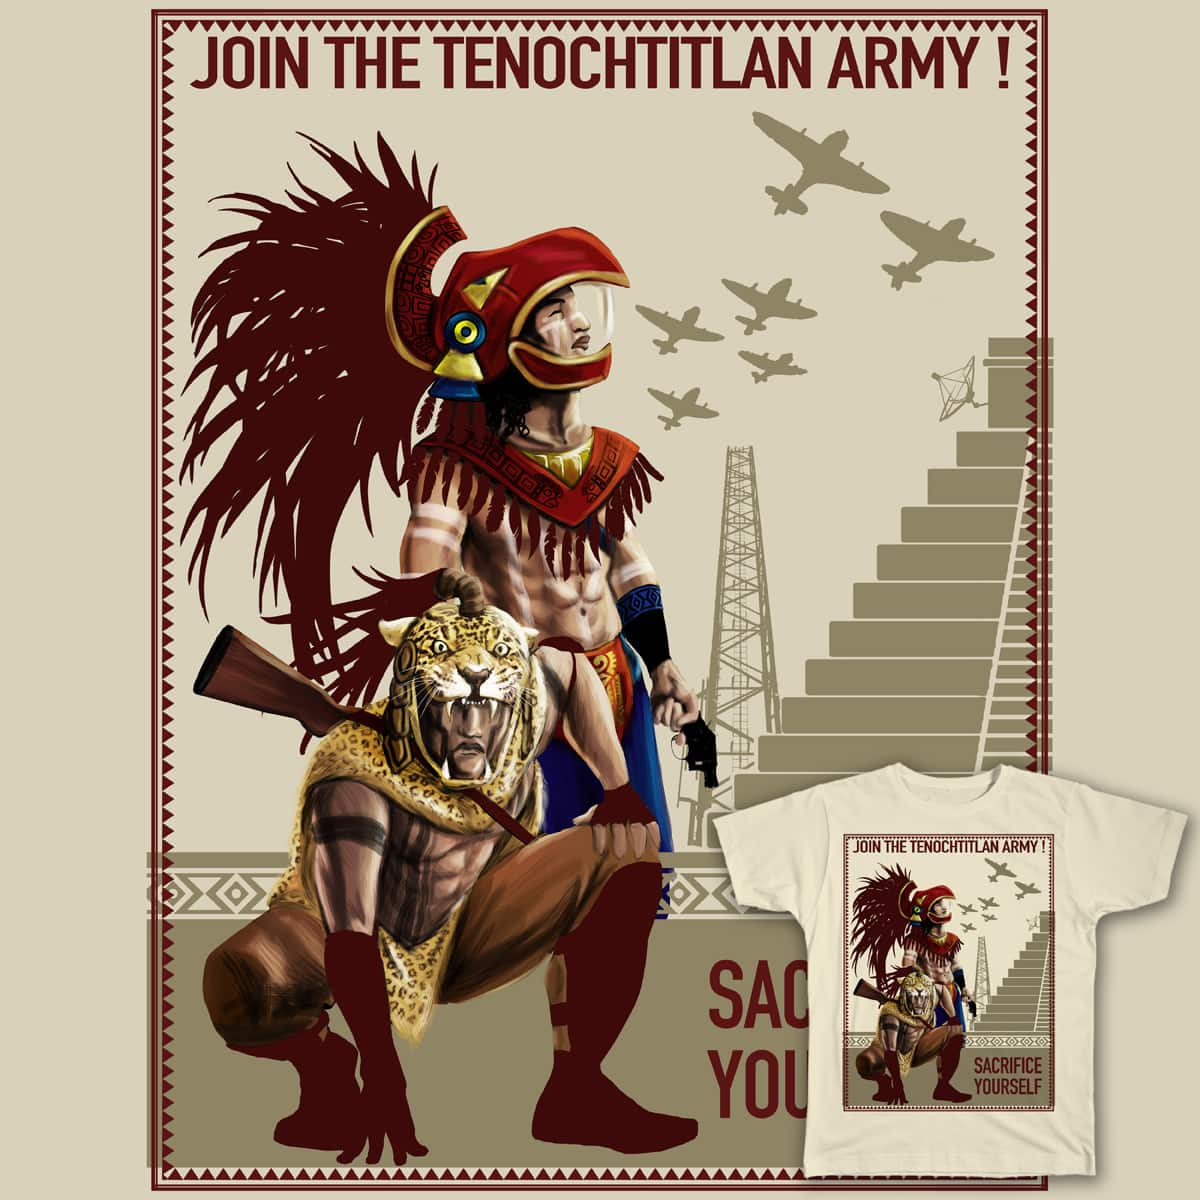 Join the Tenochtitlan army! by piratadandi on Threadless